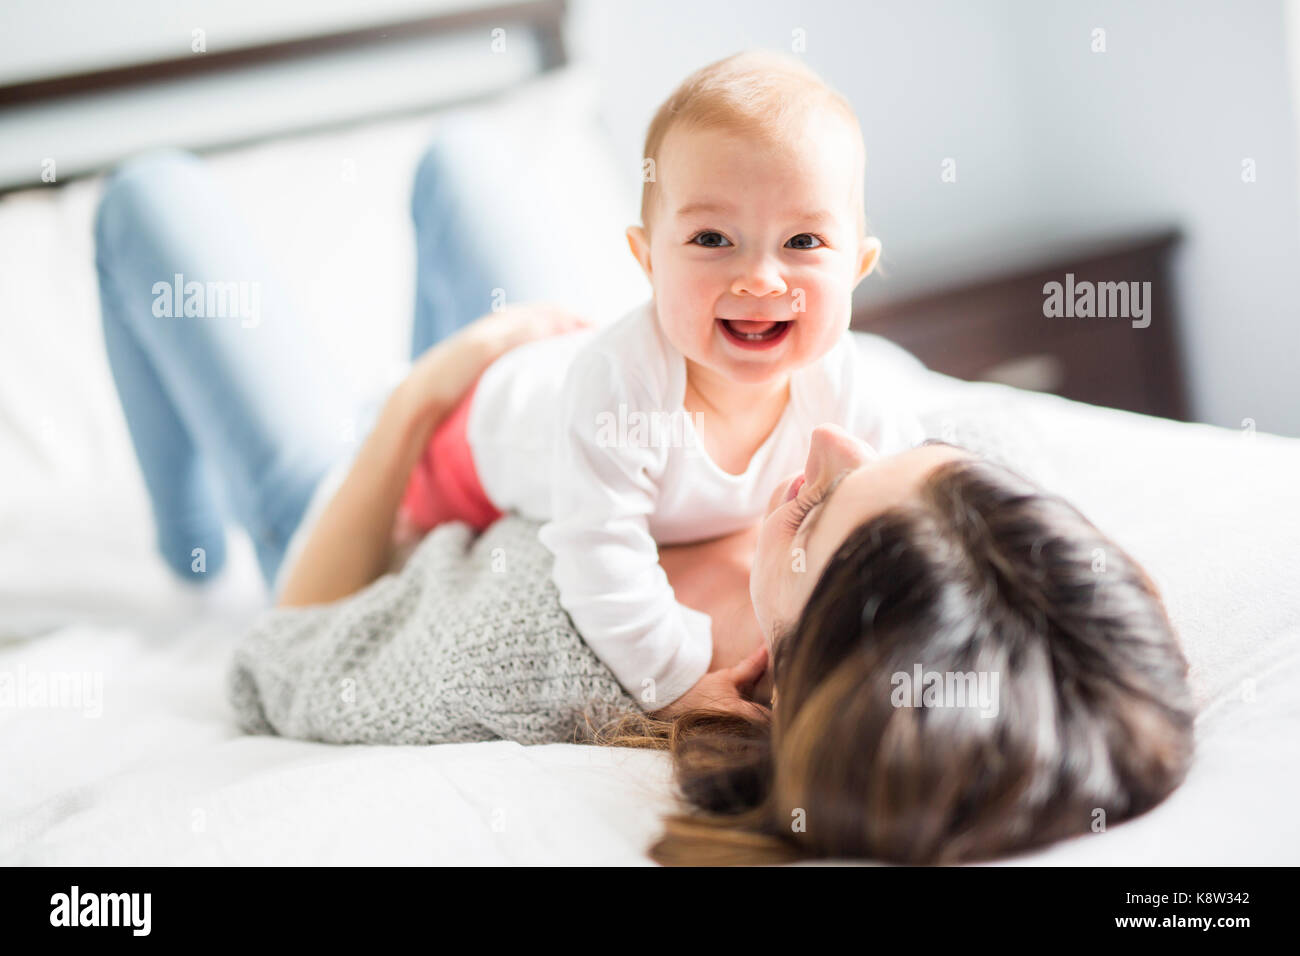 Mother and baby child on a white bed. - Stock Image